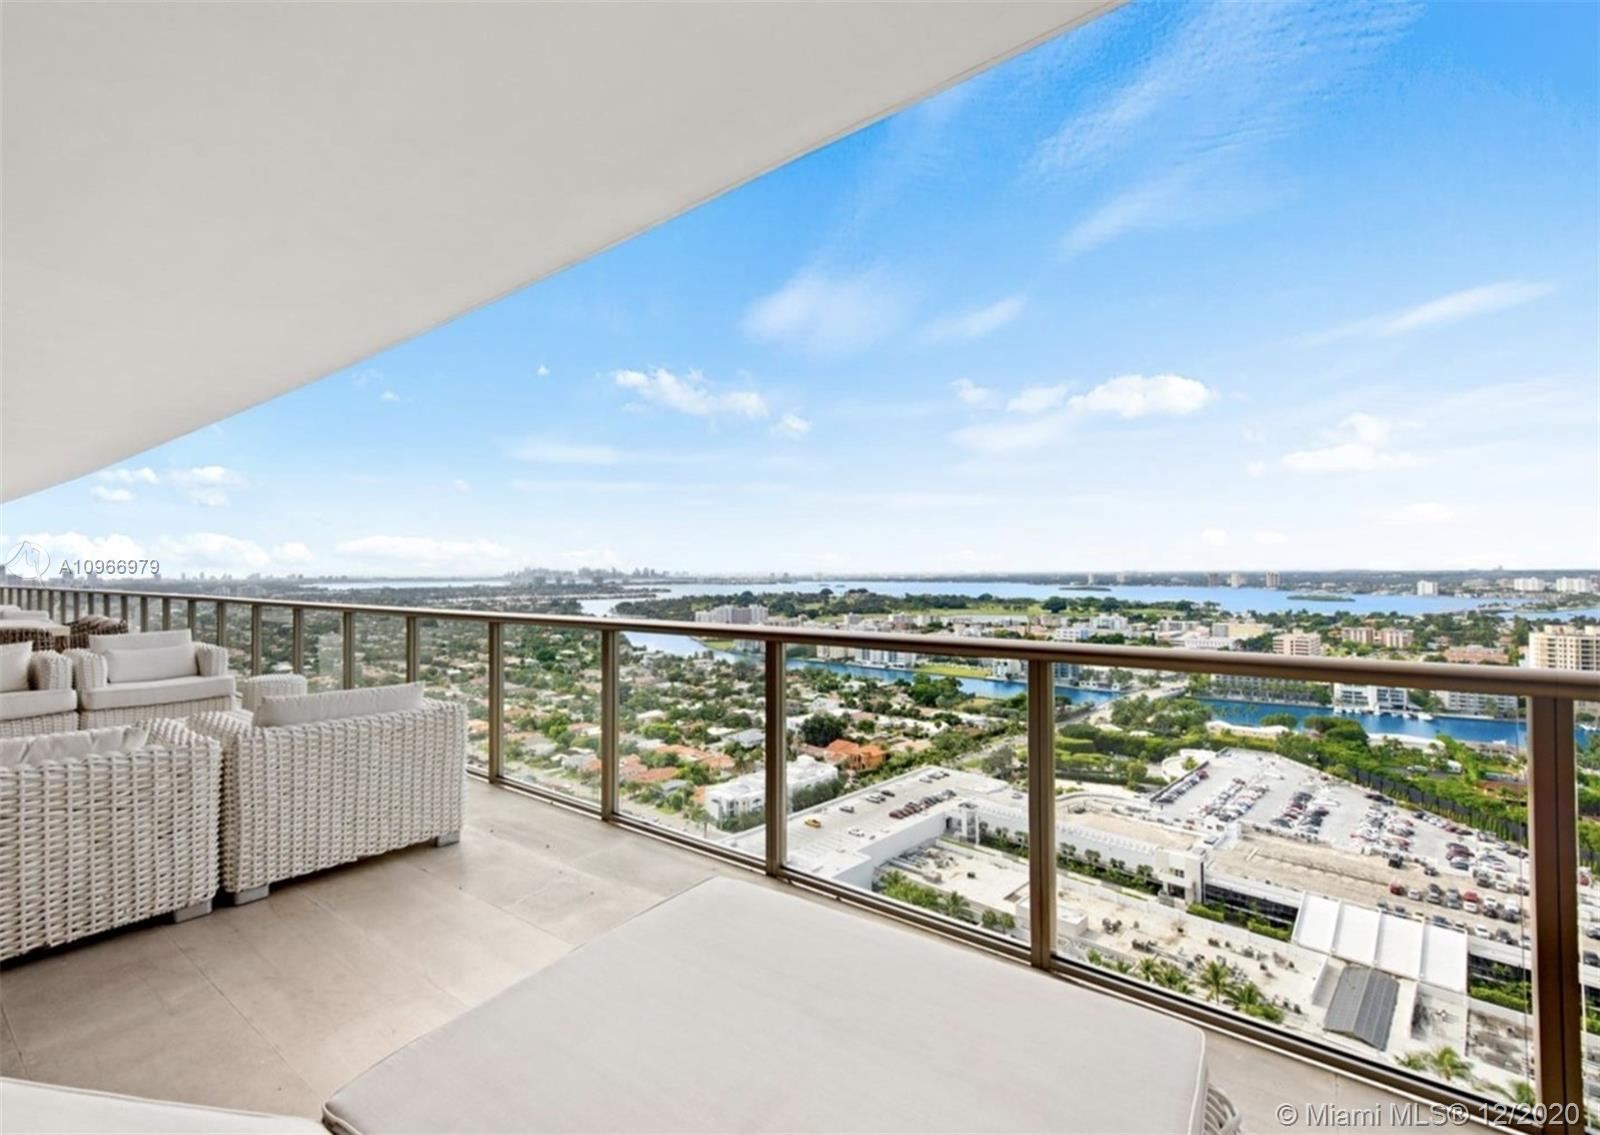 Unique opportunity to own this Penthouse Mansion on the sky at the St. Regis Bal Harbour. Two units combined; 2702 & 2703. Located directly on the ocean with breathtaking views of the Atlantic and across from the renowned Bal Harbour Shops. This penthouse boasts five bedroom suites with two master bedrooms, custom finishes and furnishings and nearly 100 ft of continuous balcony on the east and west sides of the unit, PH 02/03 is ideal for large families and as spectacular as the view it commands. Live above it all! see broker remarks for sq.ft.